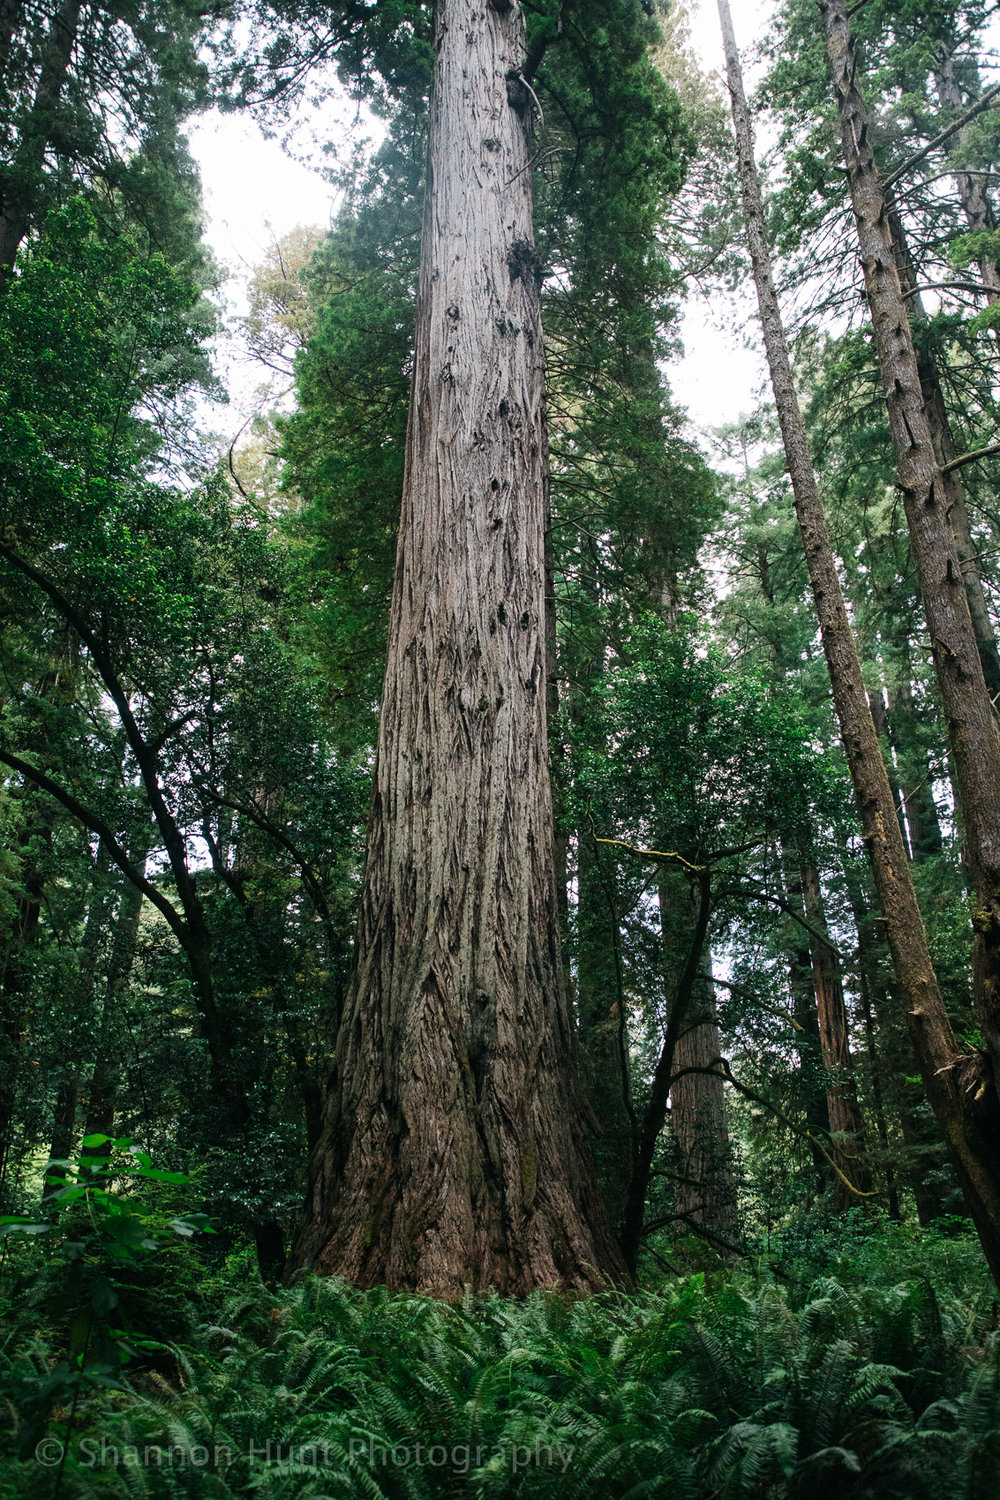 Redwoods are so difficult to photograph. They're so huge, and you're so close that normal lenses only show you a small fraction of the tree. But wider angle lenses make them look narrower and smaller than they are in person. They're overwhelmingly wide and tall. Here's a tree, and in the next couple of photos we stand next to the same tree to TRY to give an idea of its grandeur.